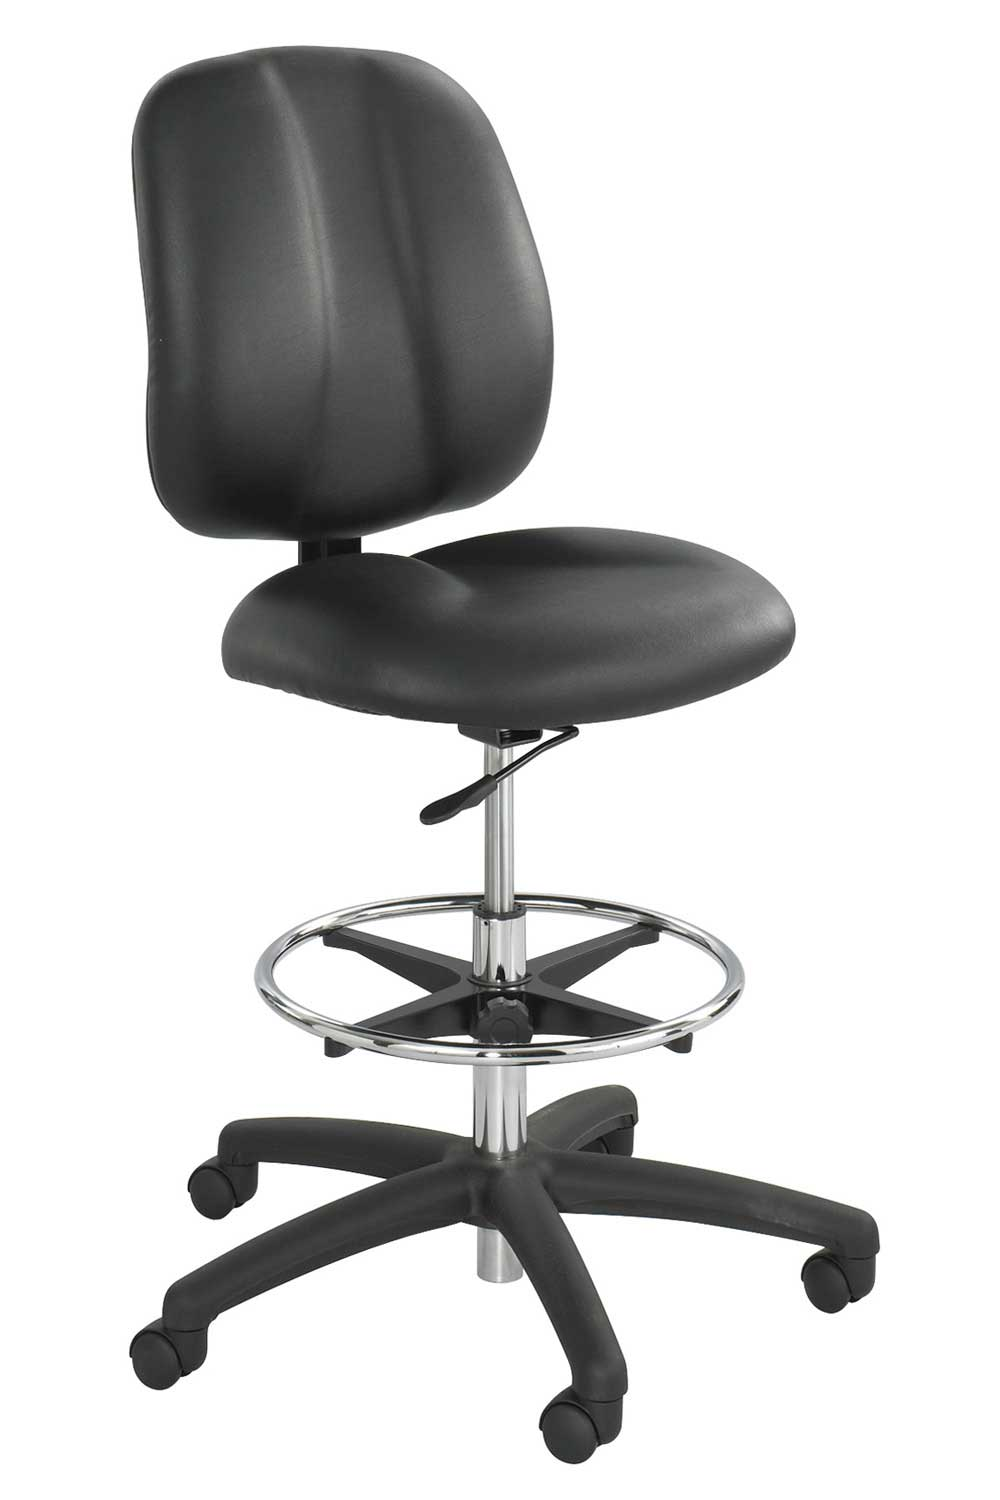 Incroyable Tall Desk Chair